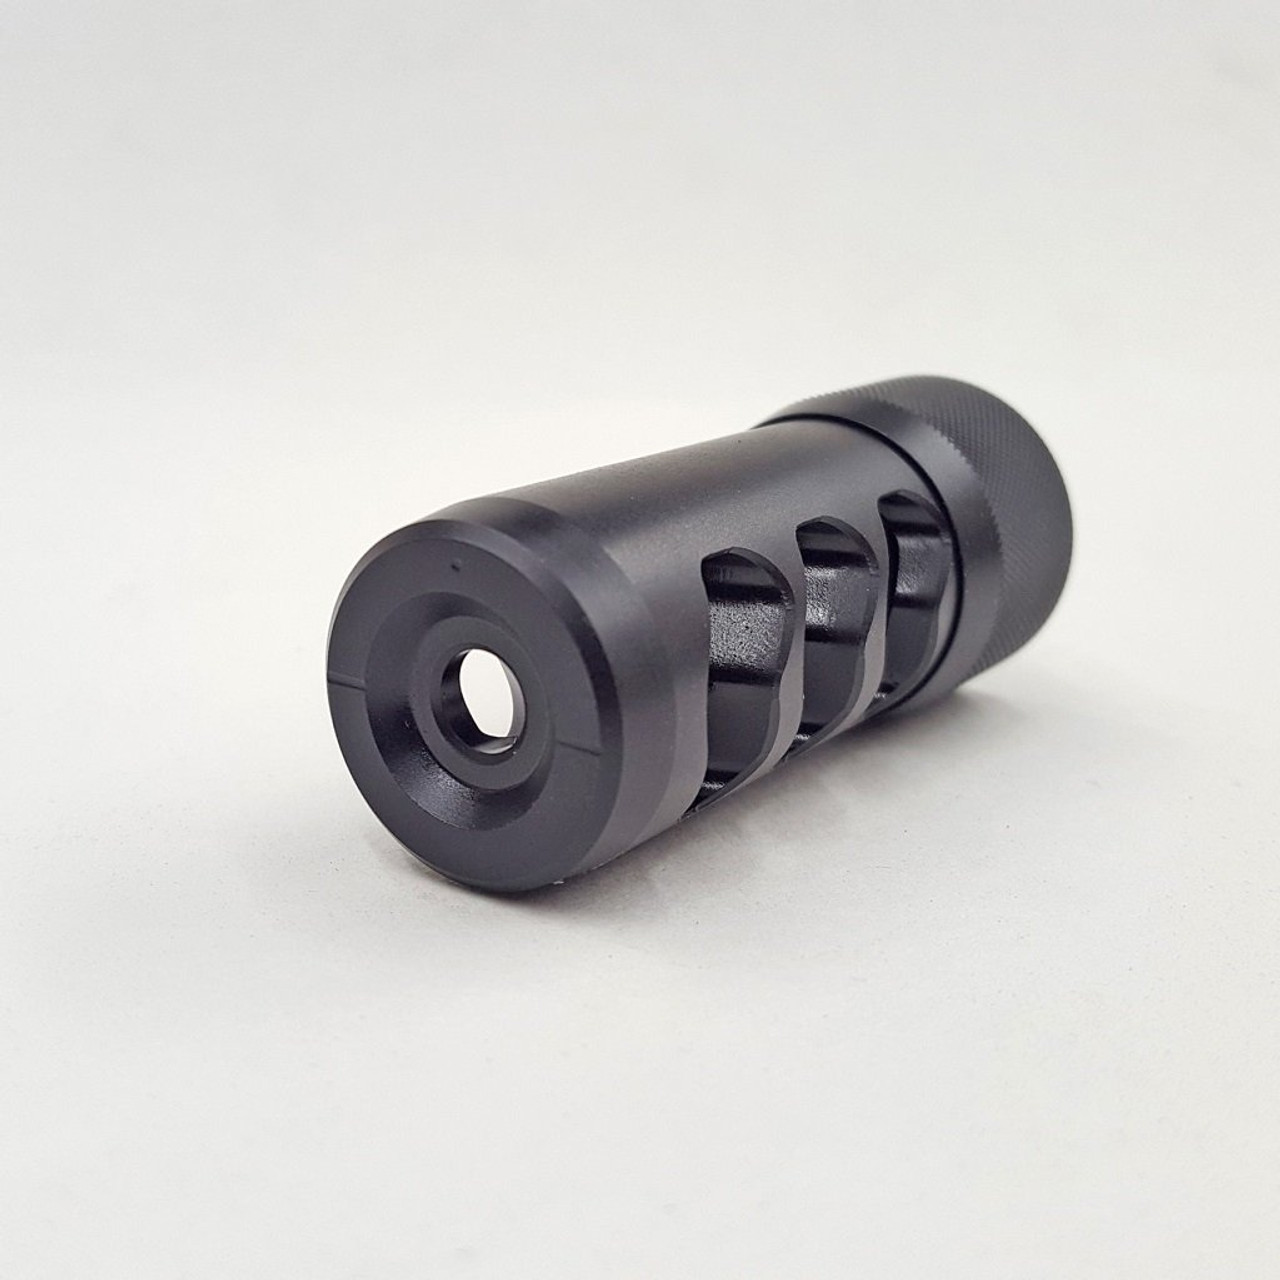 Area 419 Hellfire Muzzle Brake - Precision Rifle Division